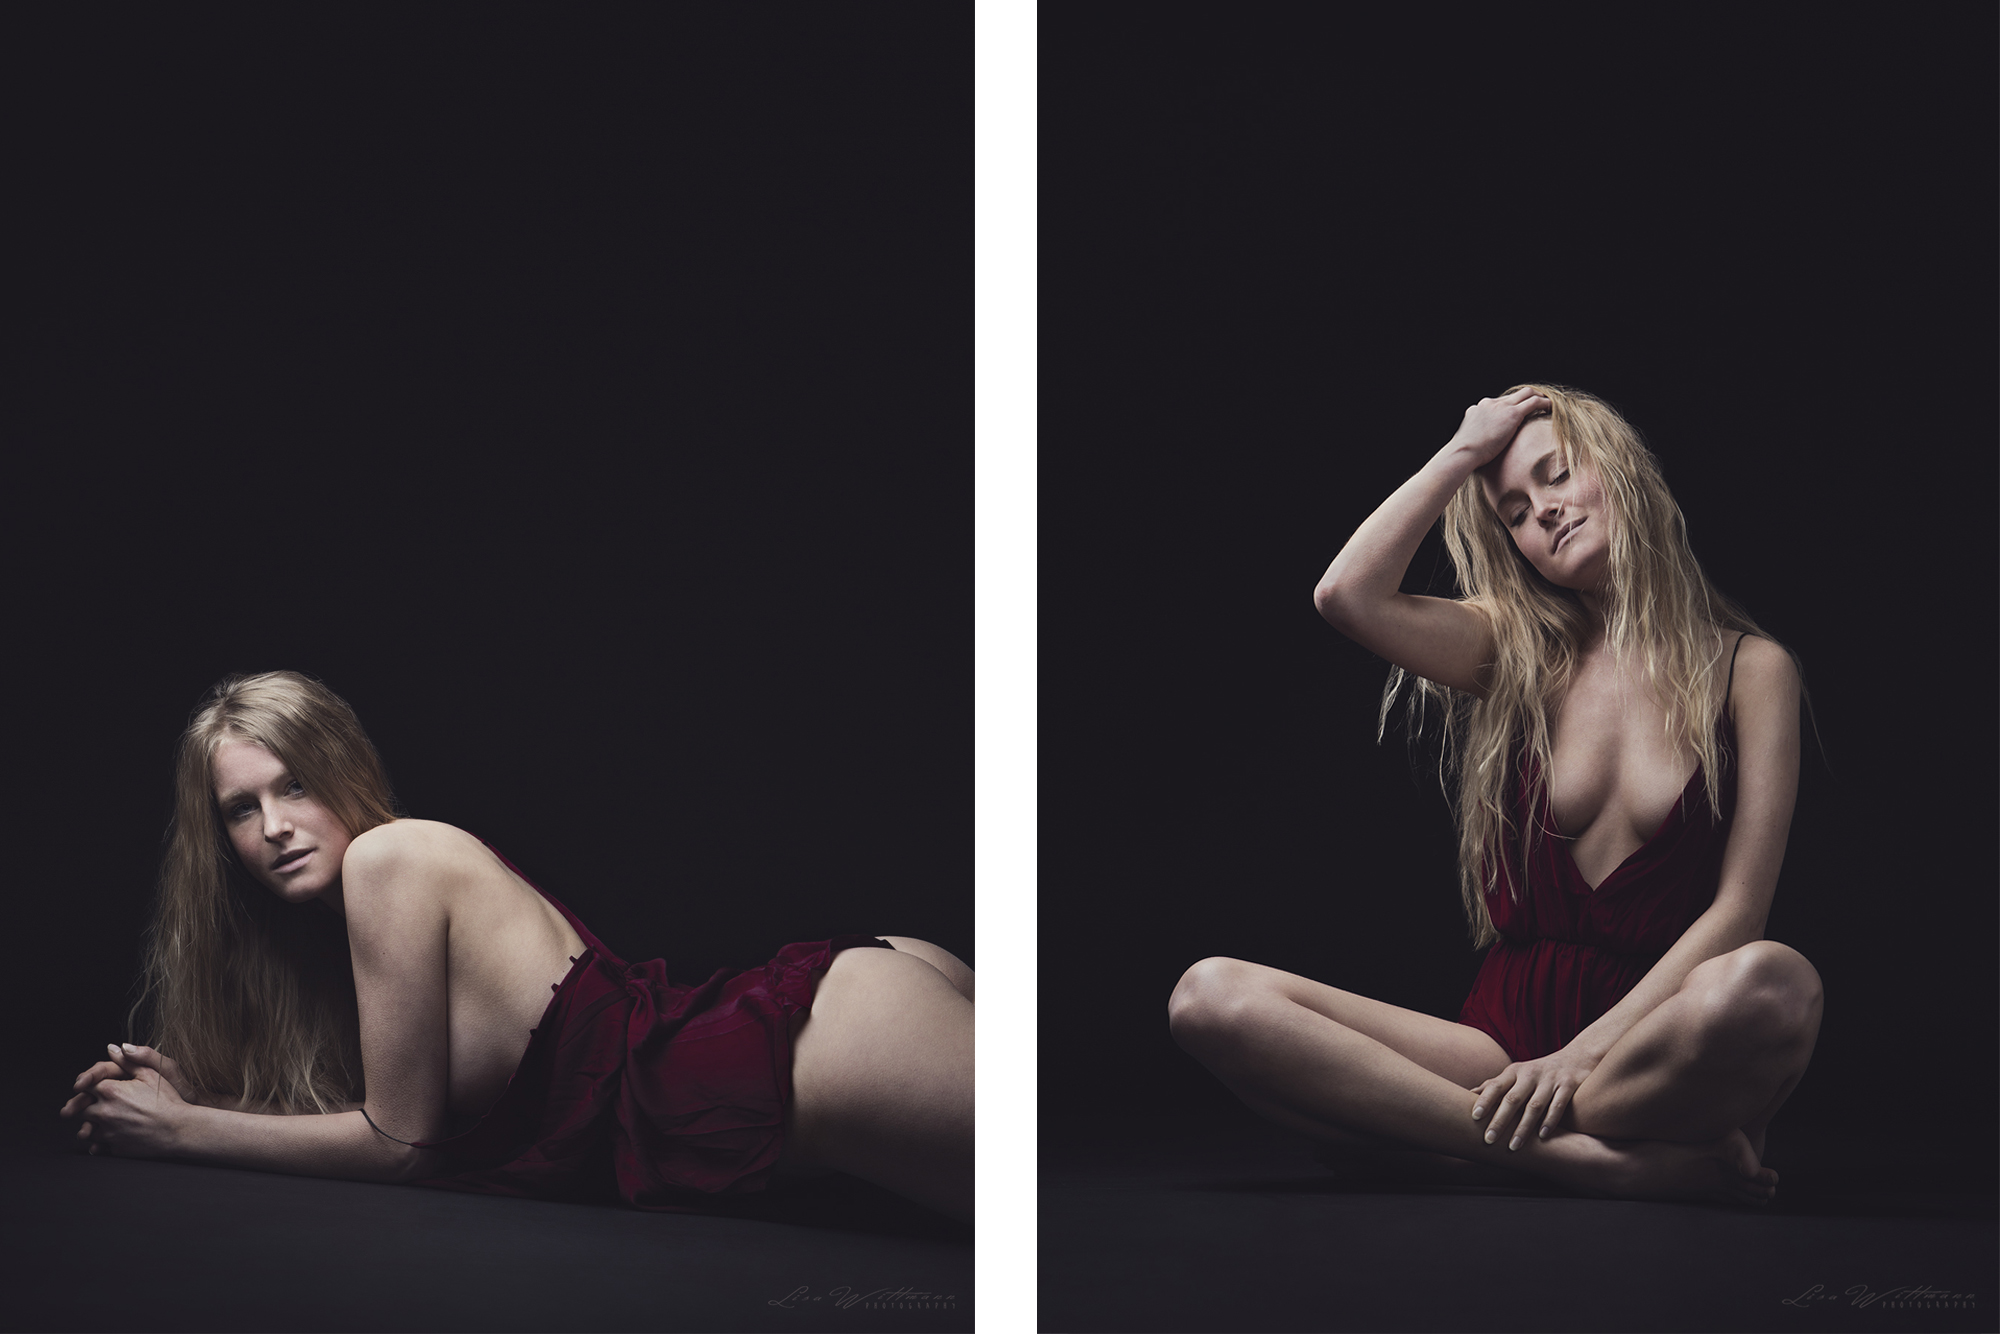 lisa_wittmann_photography_nude_woman_sexy_pale_blonde_red_black_breast (2)